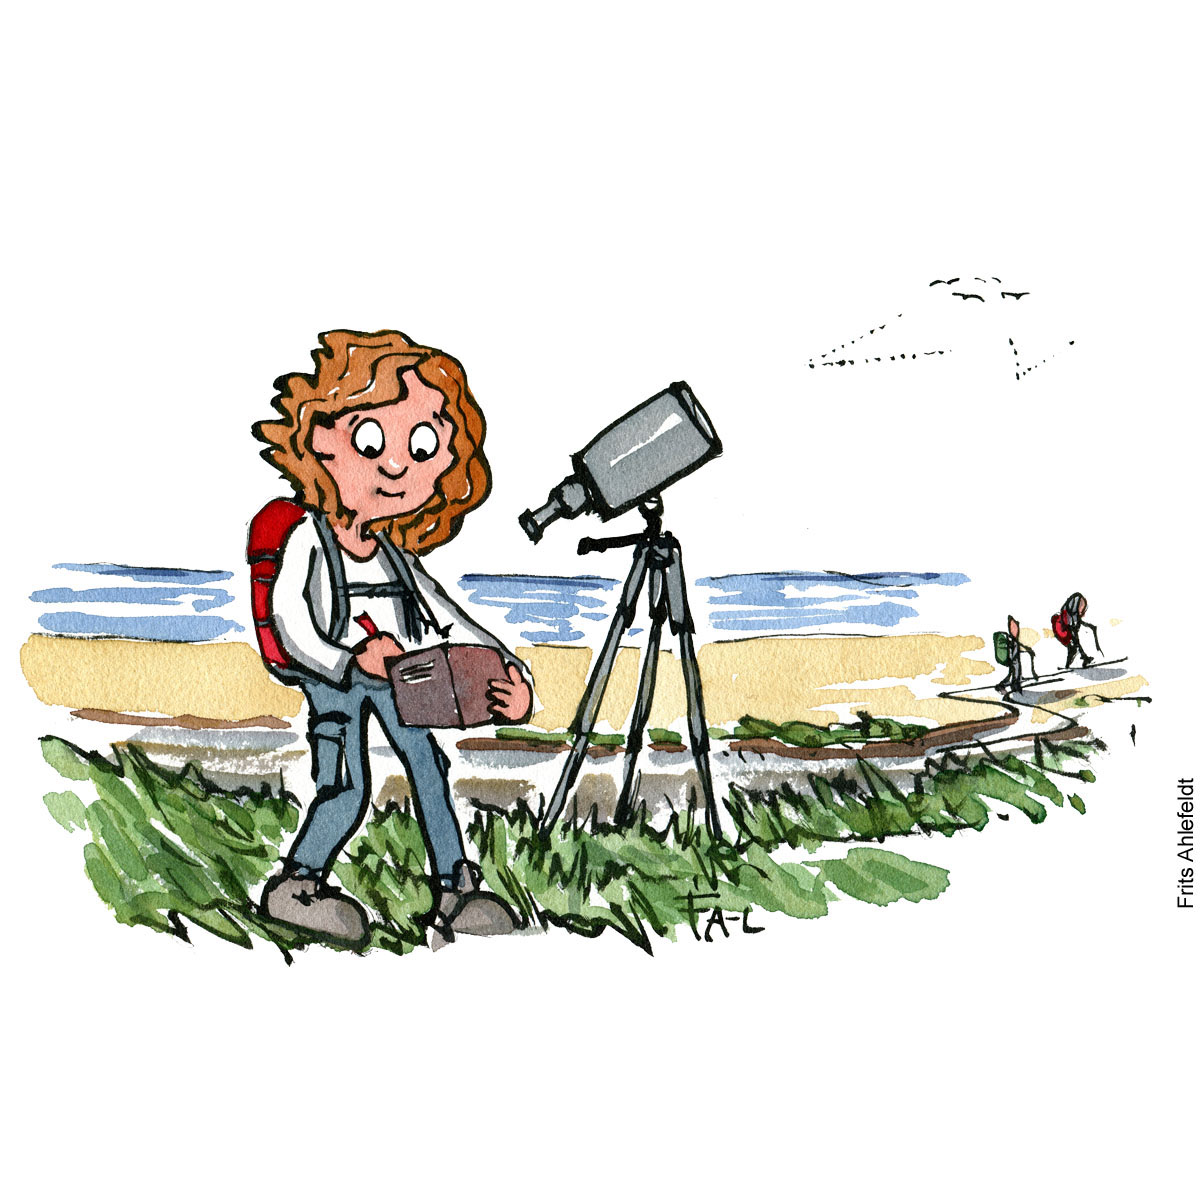 Drawing of a hiker with a binoculars, taking notes of birds. Citizen Science illustration by Frits Ahlefeldt